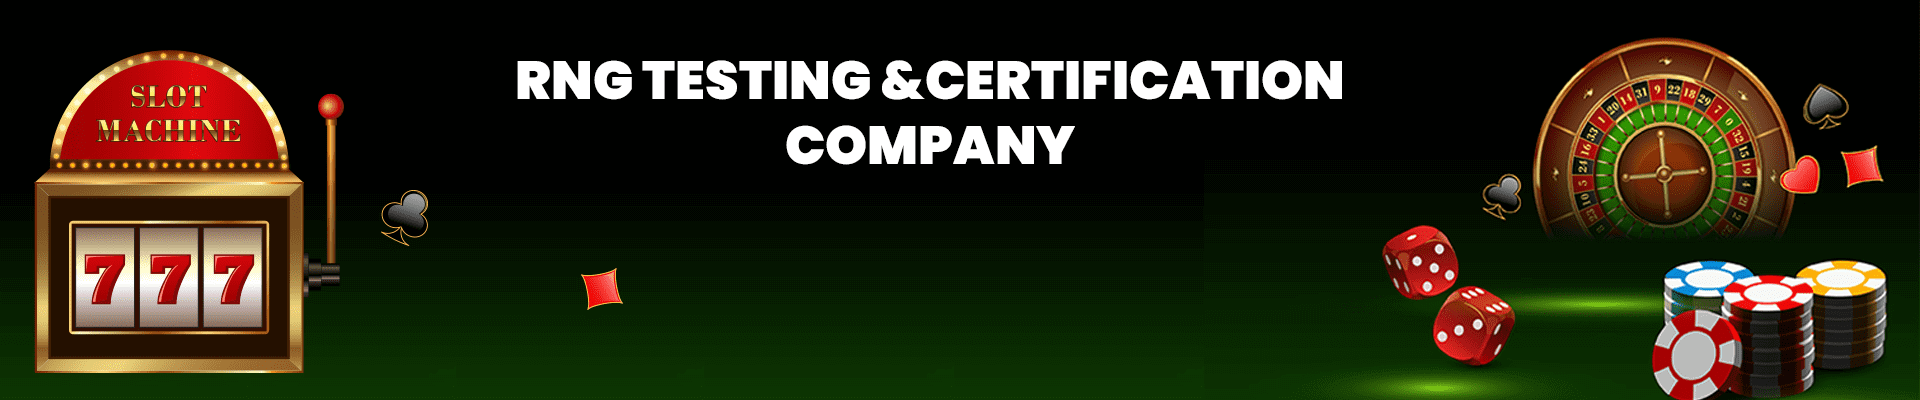 Top RNG Testing & Certification Company   Best RNG Testing & Certification Services (2021)